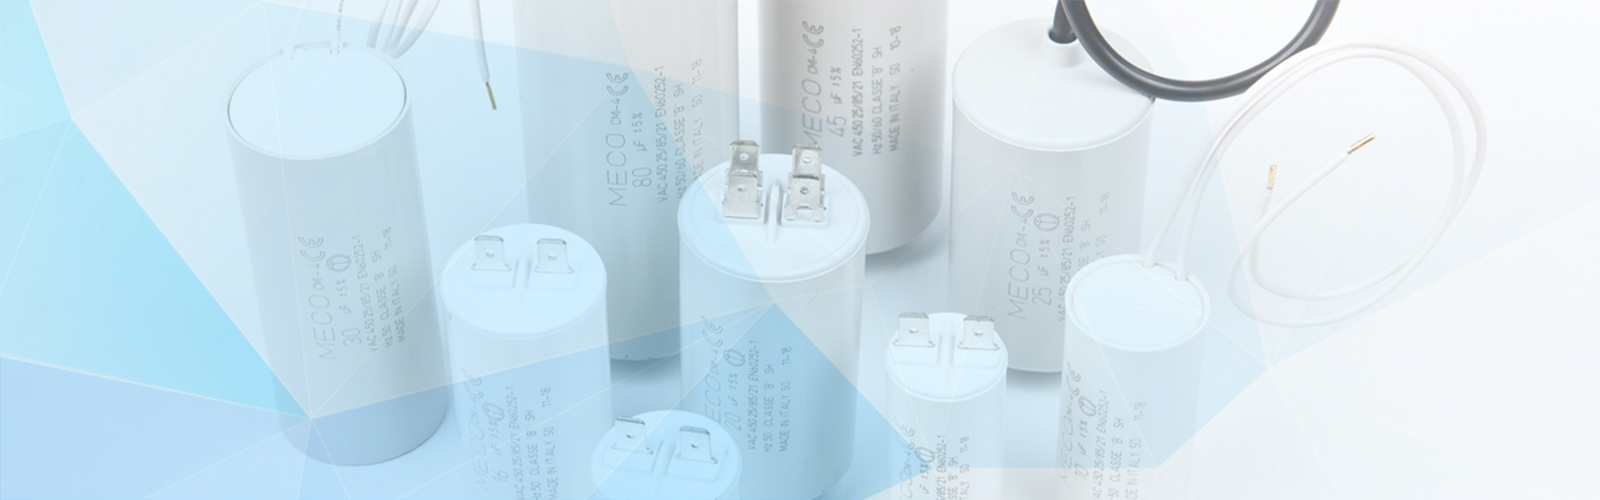 , Meco Capacitors Homepage, Meco Capacitors